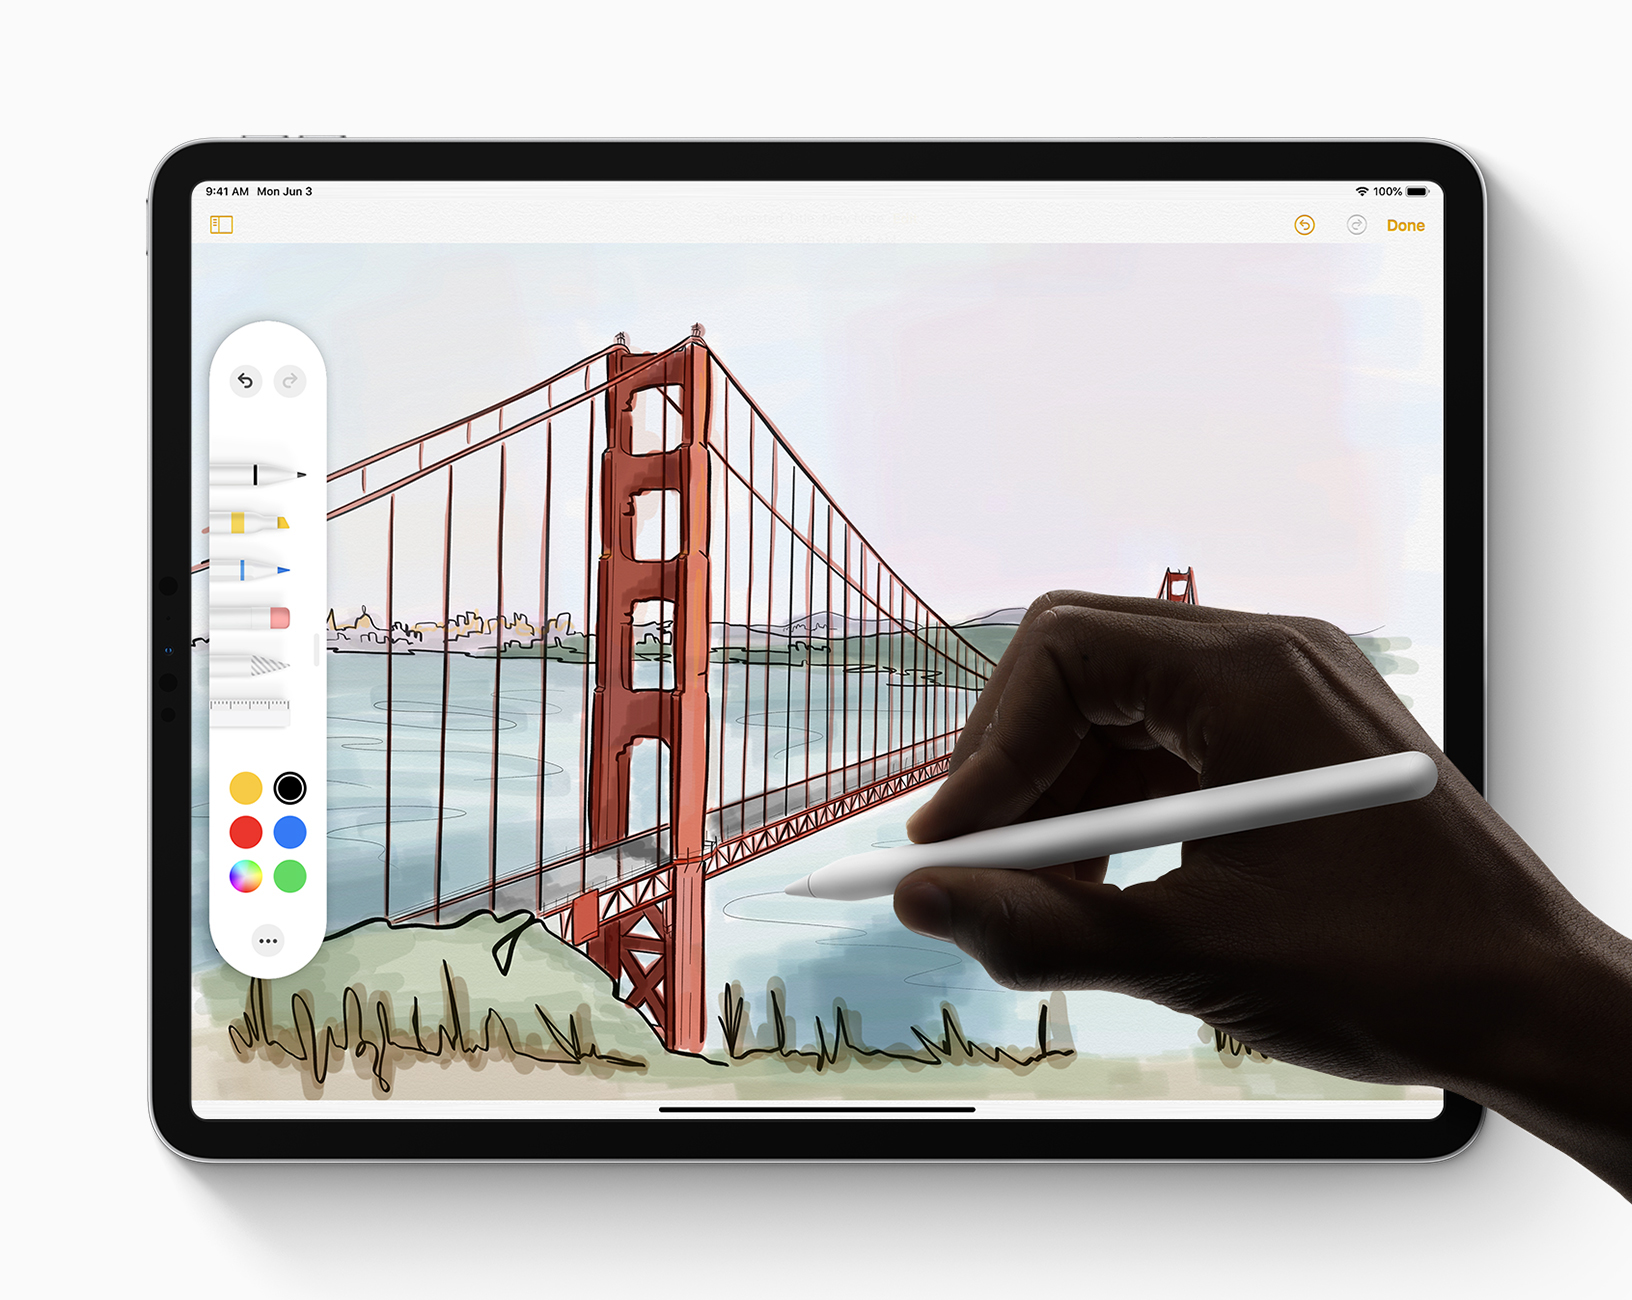 A redesigned tool palette adds tools, colors and shapes, enhancing creative possibilities with Apple Pencil.